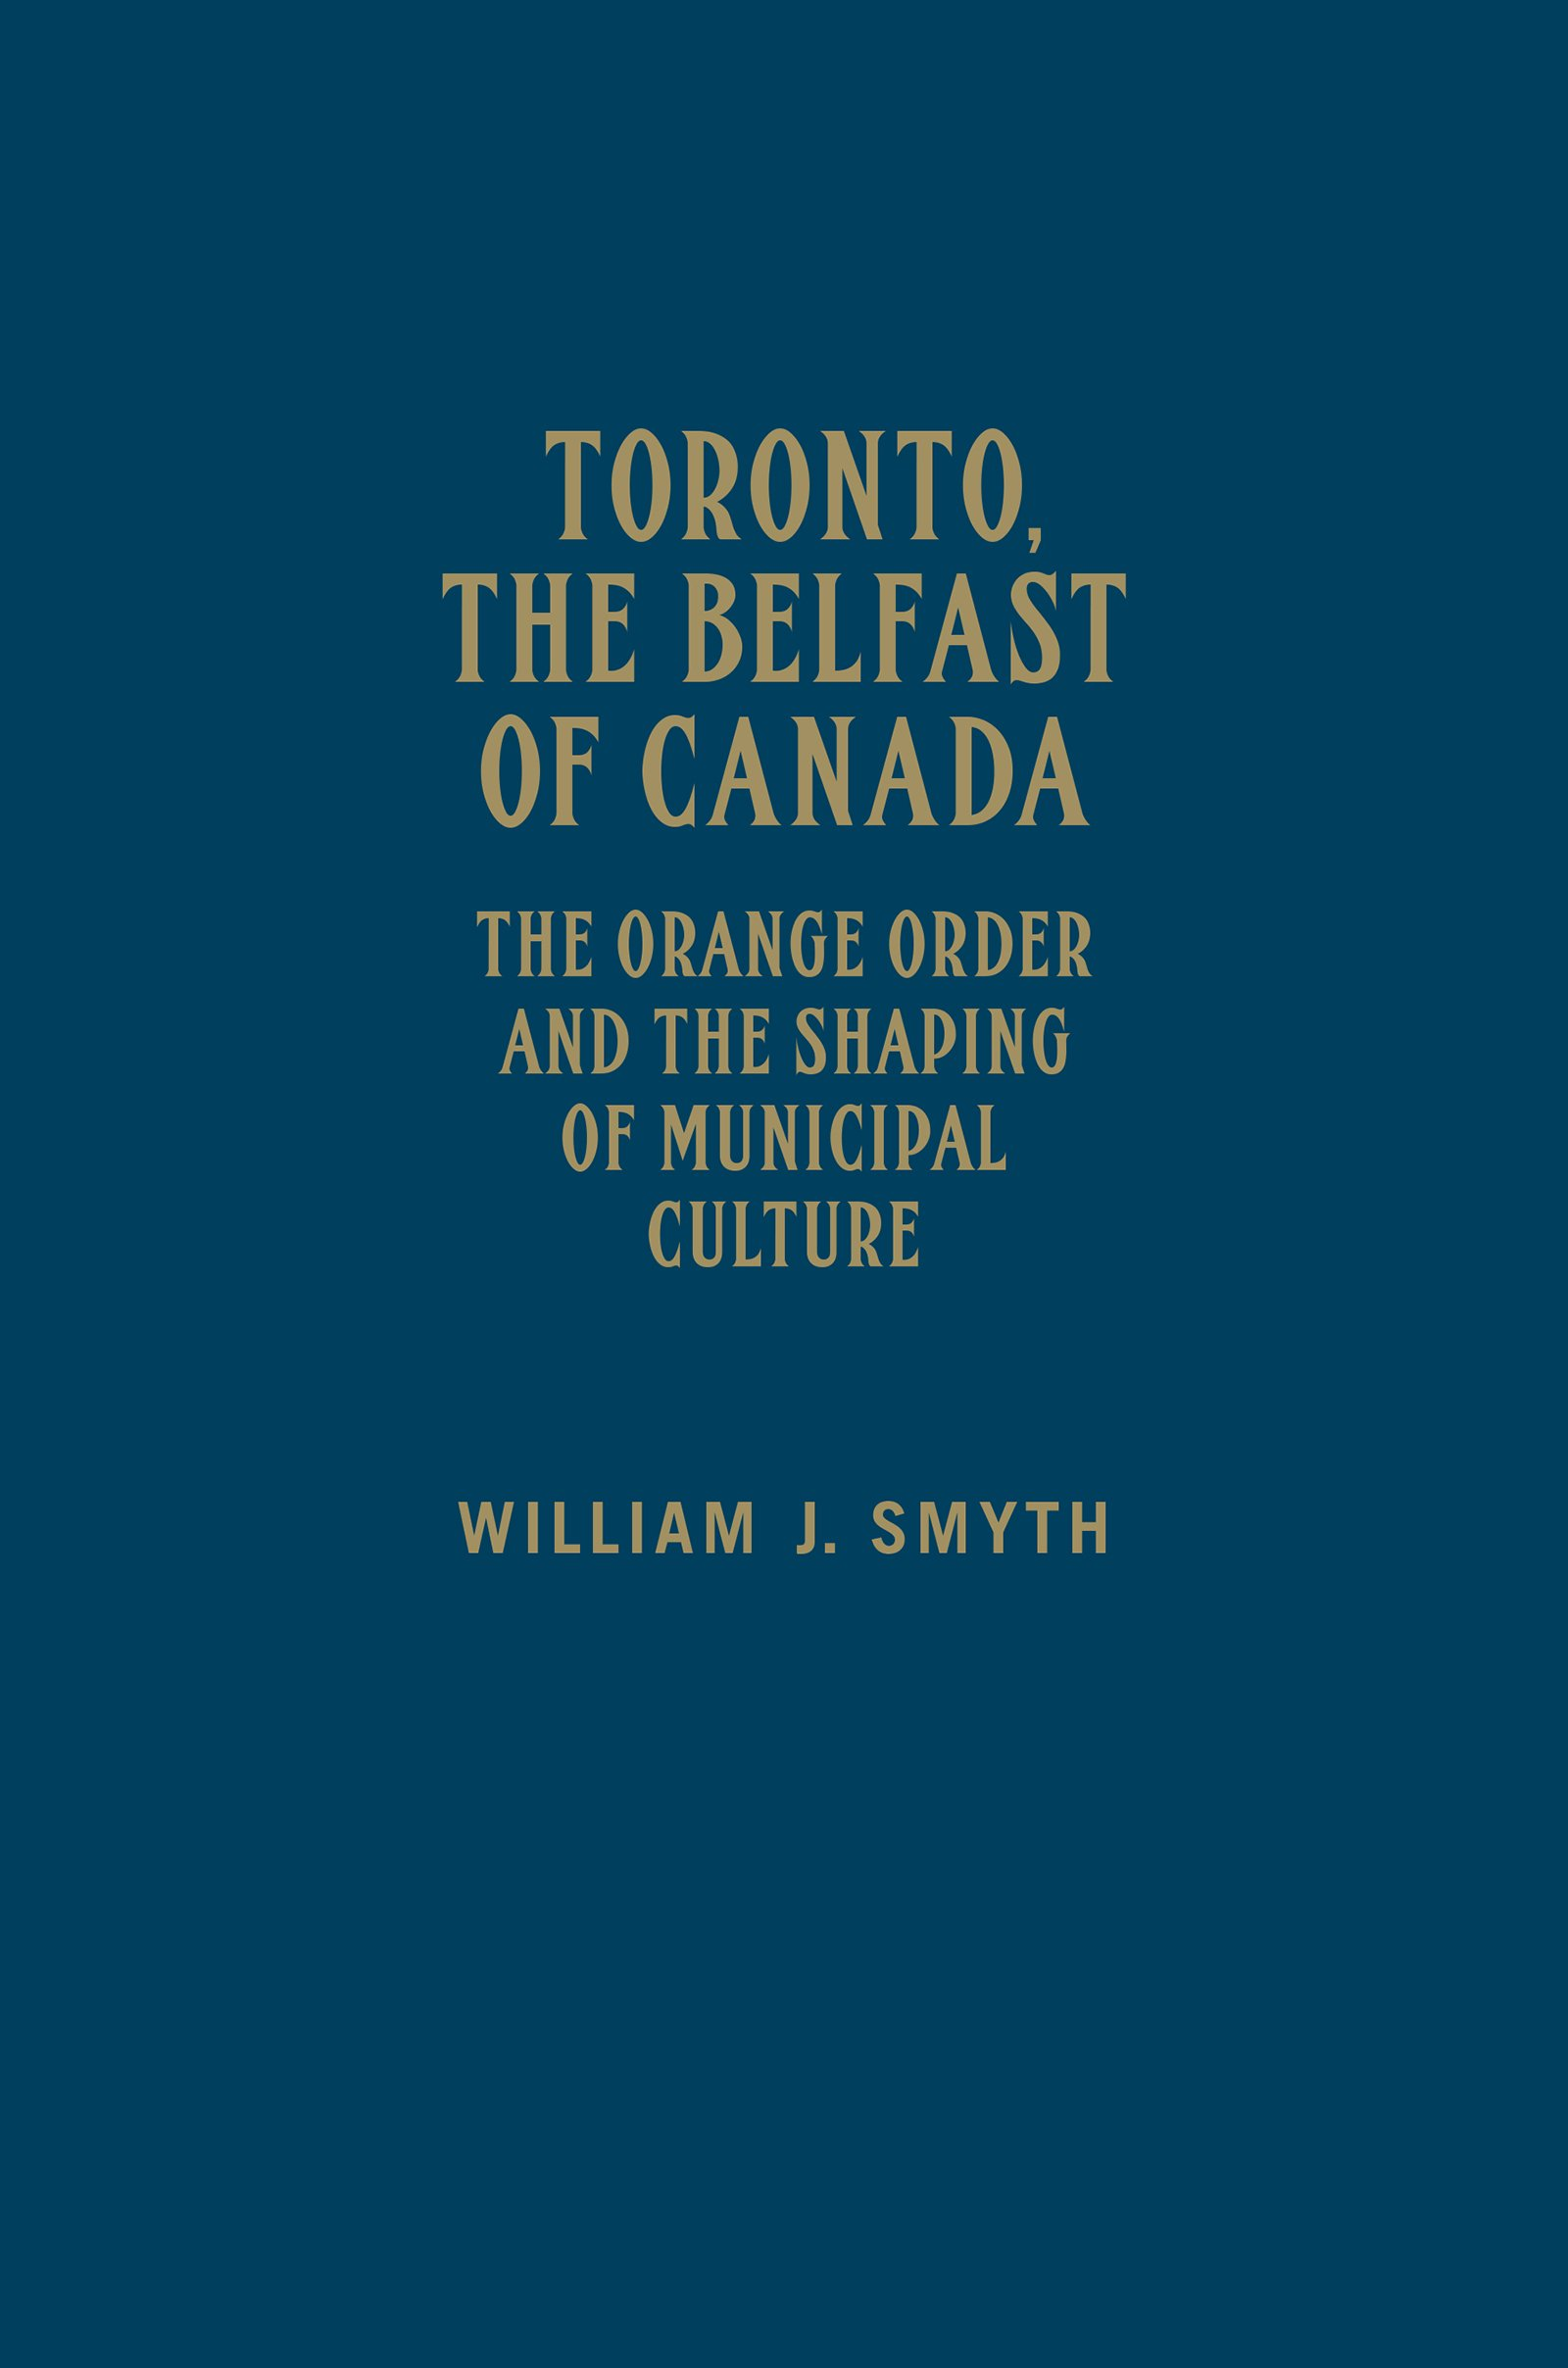 Download Toronto, the Belfast of Canada: The Orange Order and the Shaping of Municipal Culture pdf epub